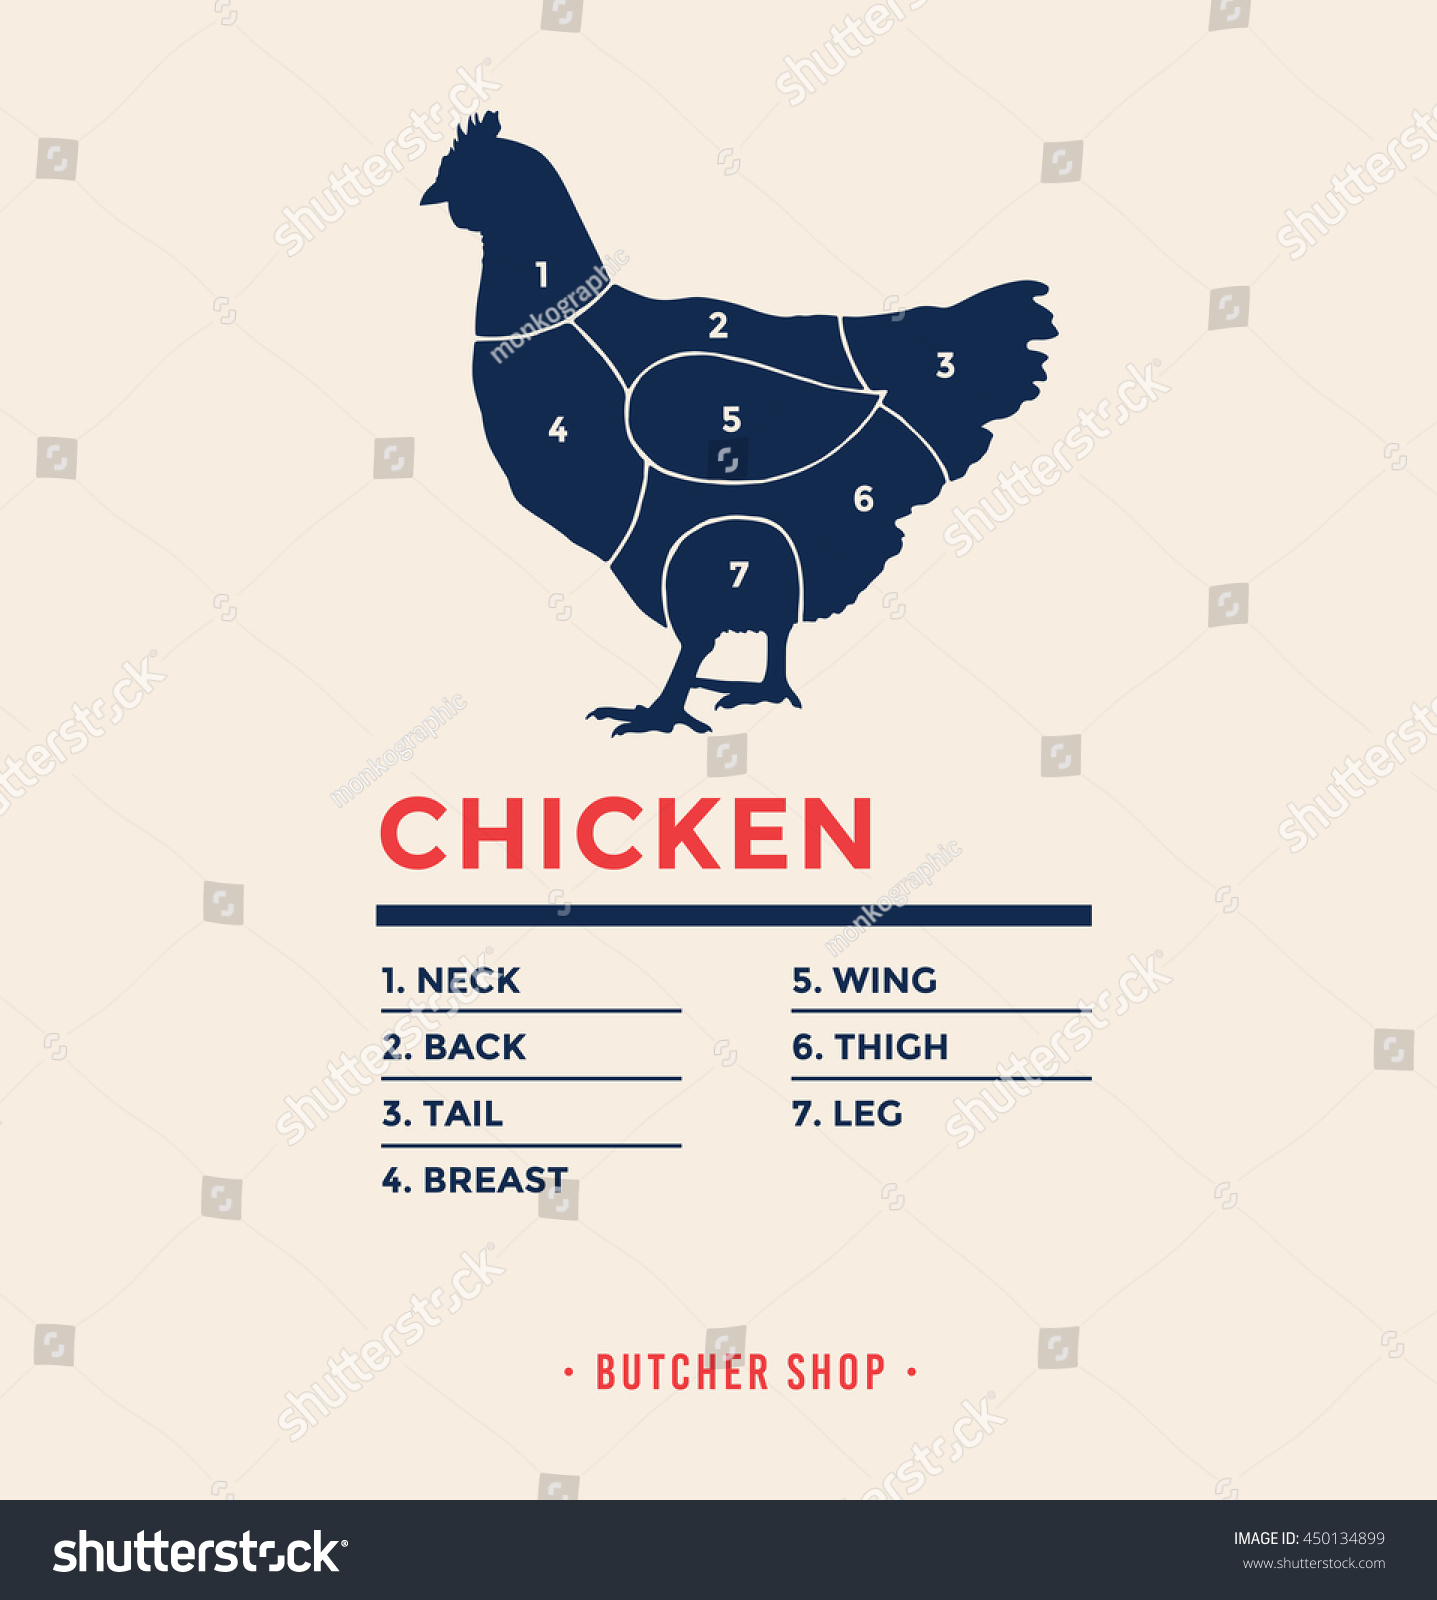 Chicken Specified Type Meat Market Stock Vector Royalty Free Diagram Leg Detailed Wing With Of Poster Butcher And Scheme